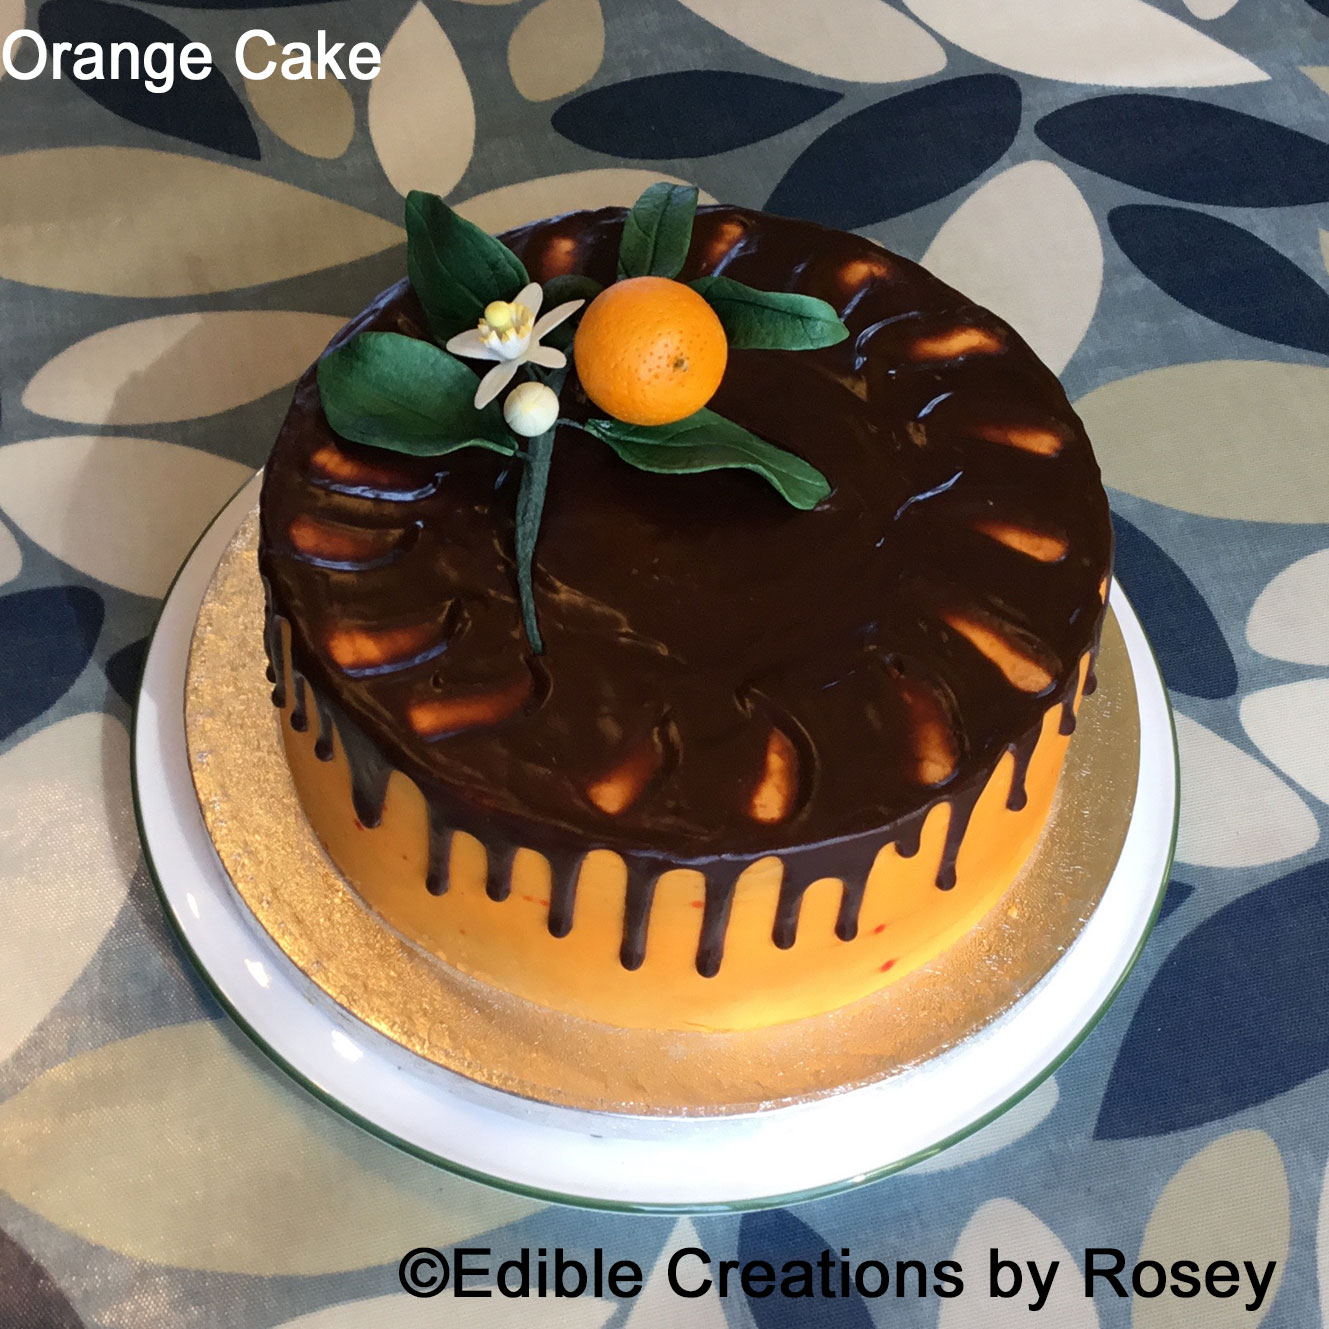 Birthday Cakes In Orange County Handcrafting Our Organic Drinks Premium Ice Cream And Frozen Yogurt Small Customized BatchesJapanese Strawberry Cake